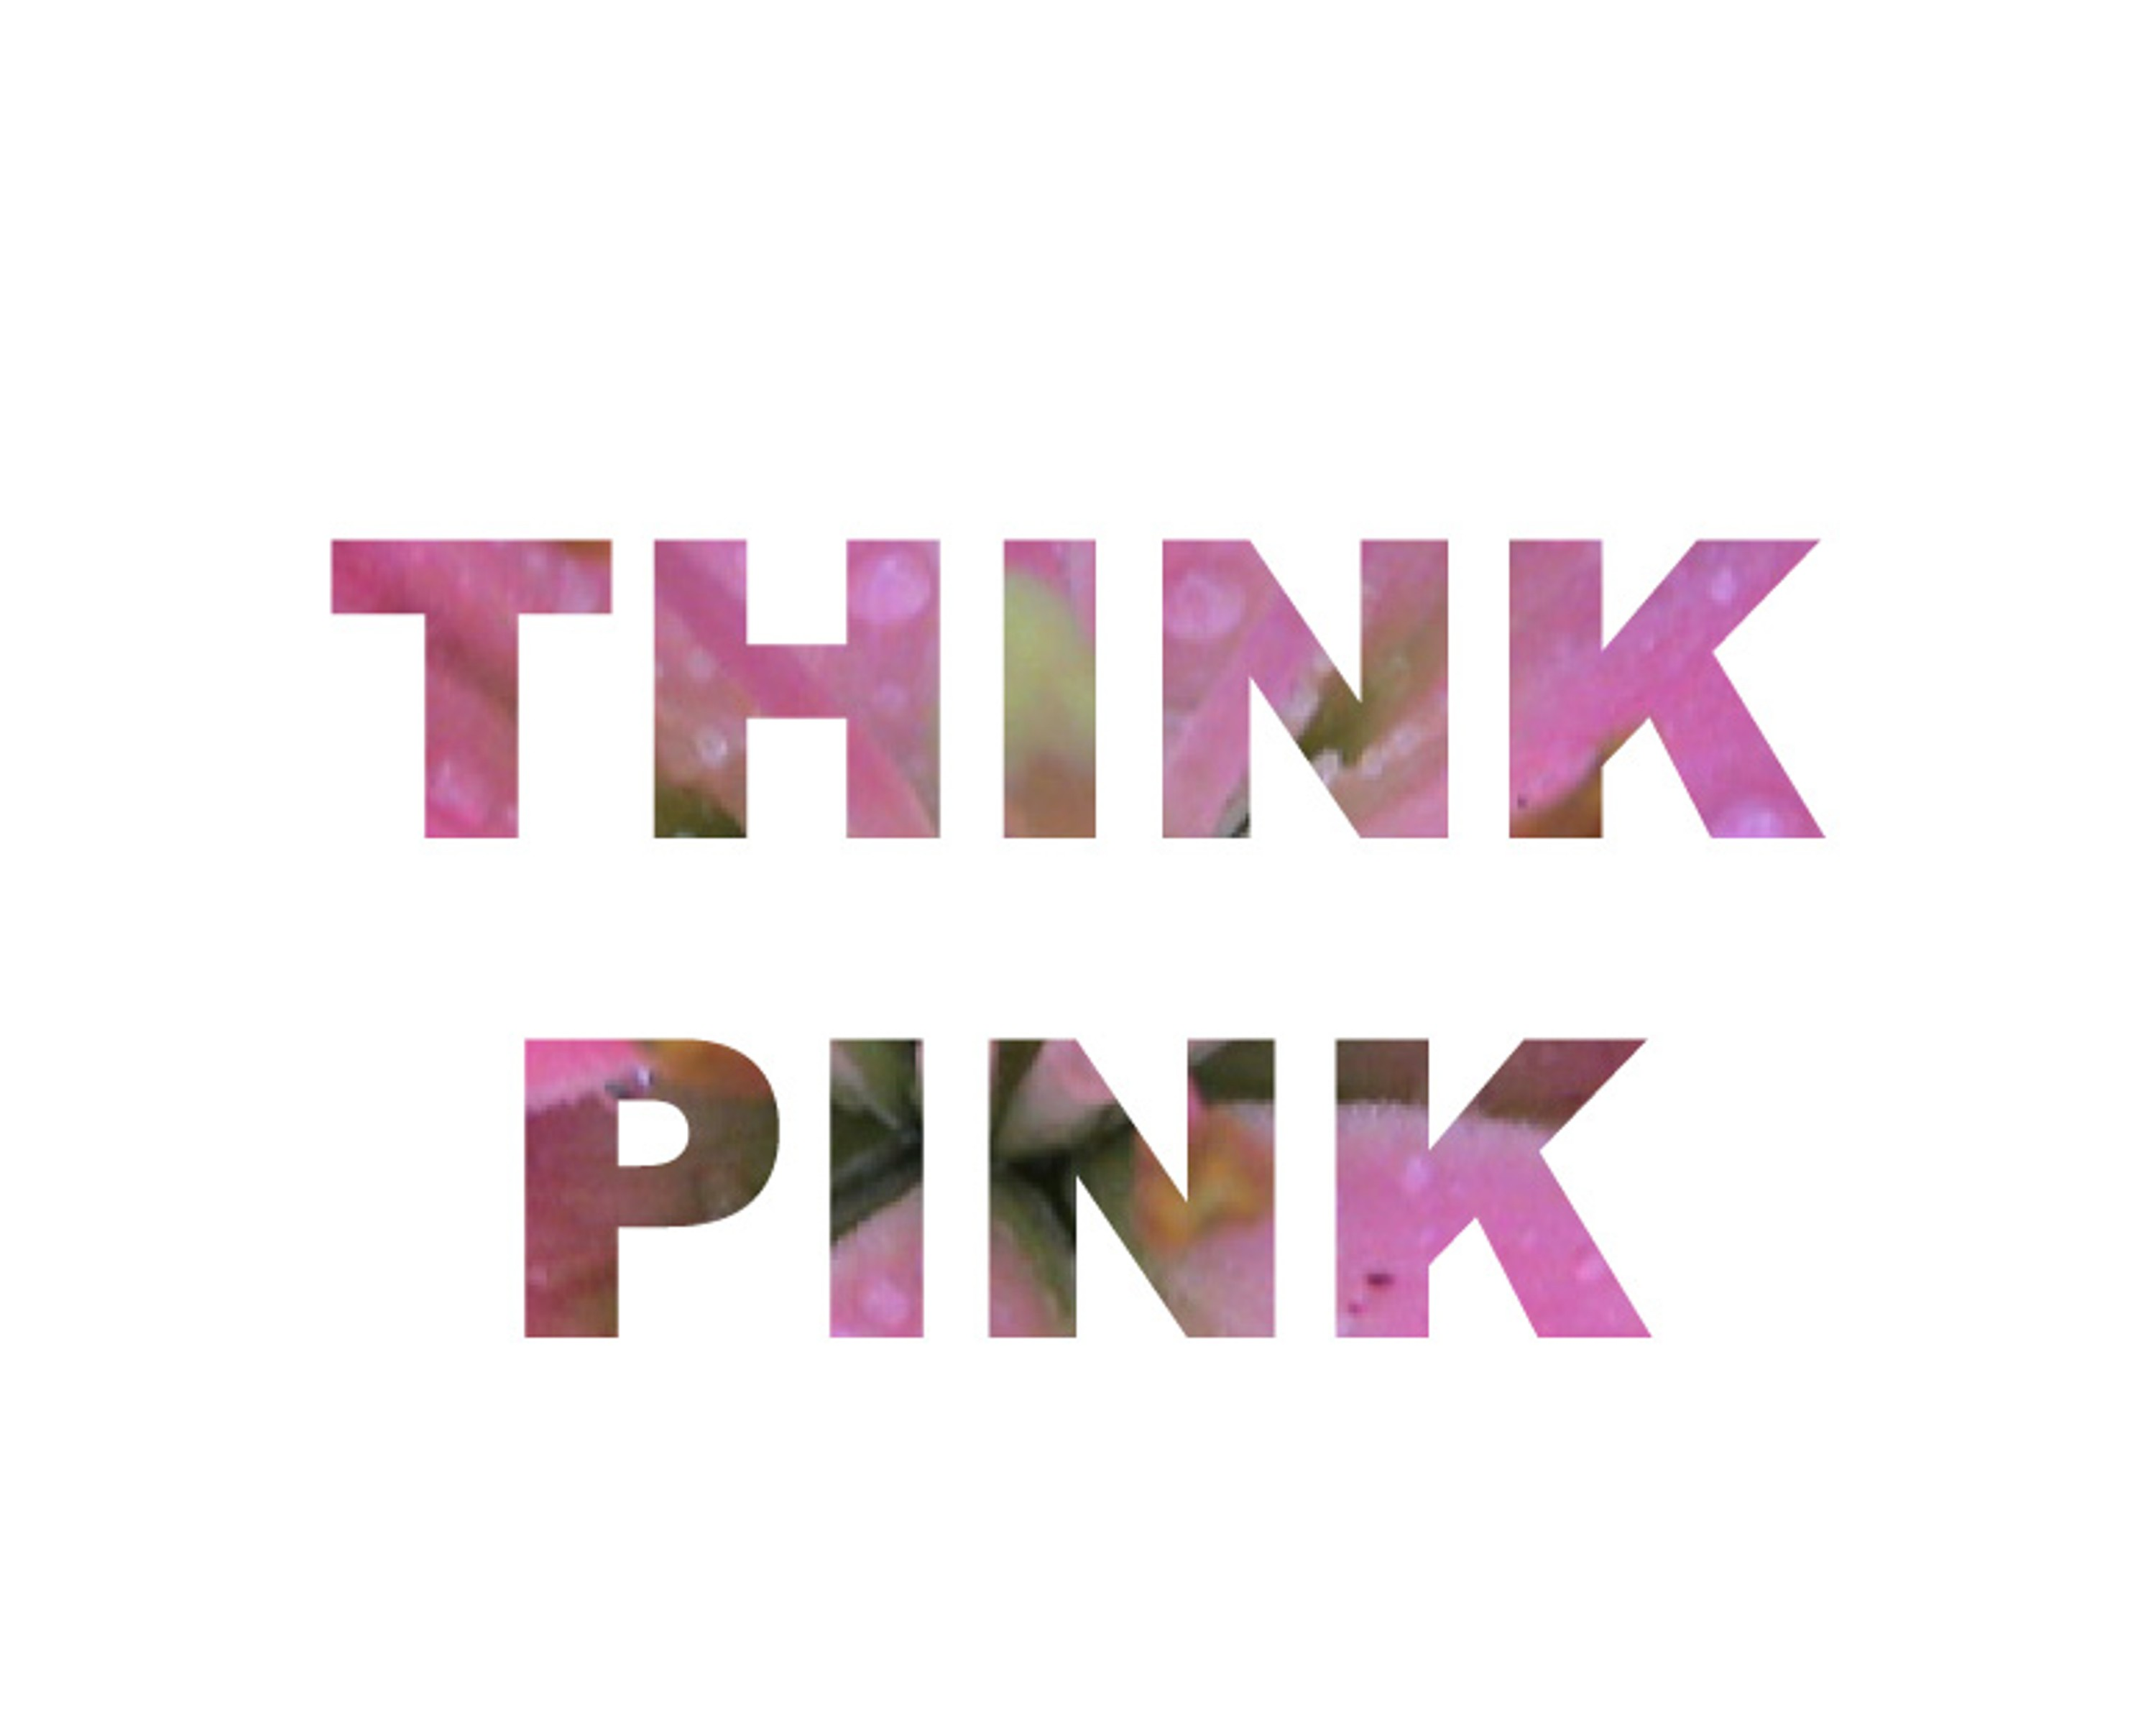 think pink by 61single - photo #15